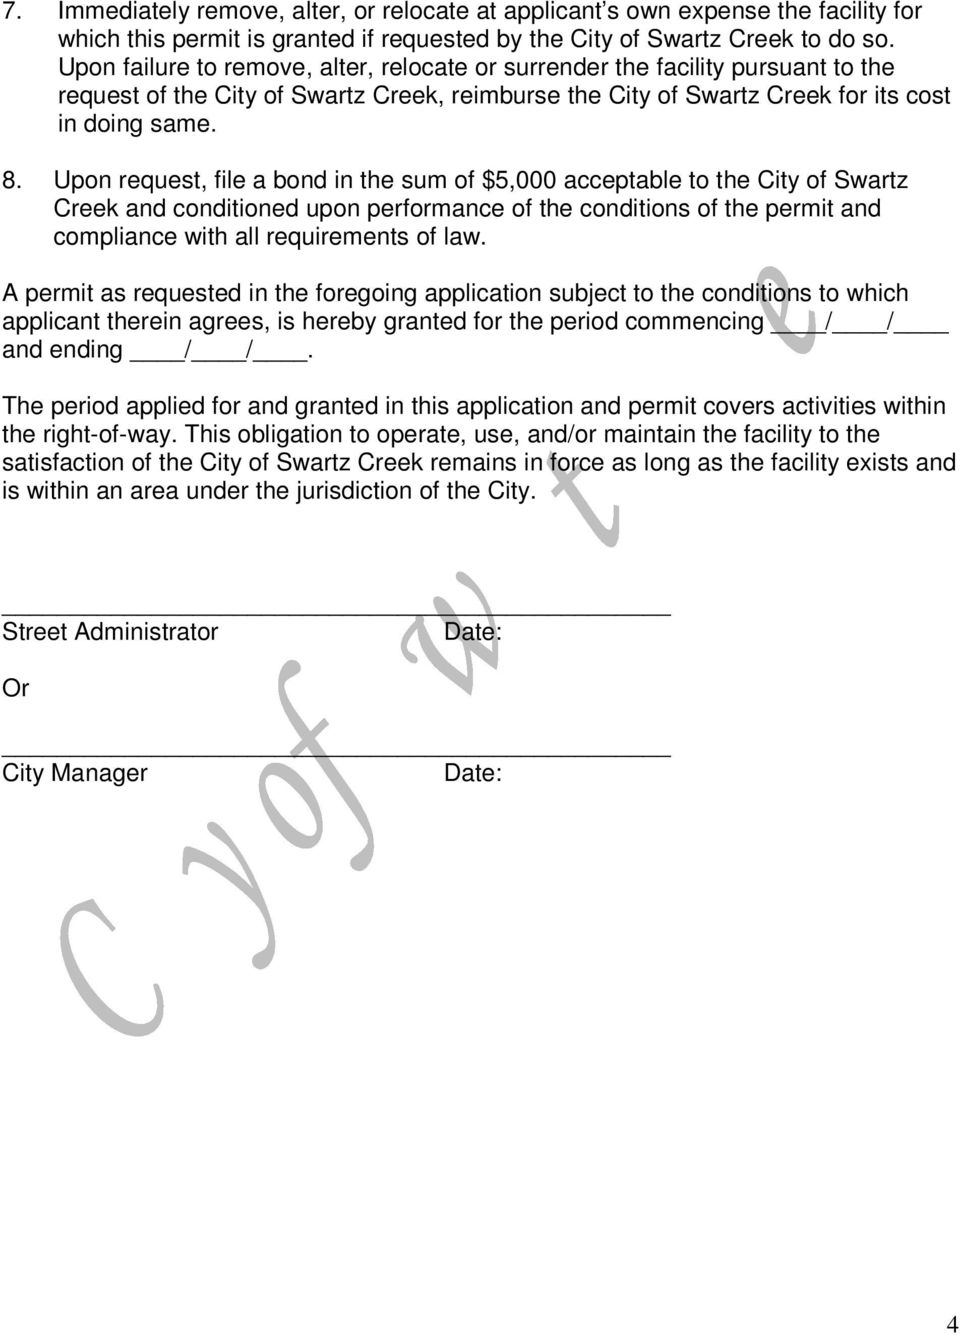 Upon request, file a bond in the sum of $5,000 acceptable to the City of Swartz Creek and conditioned upon performance of the conditions of the permit and compliance with all requirements of law.